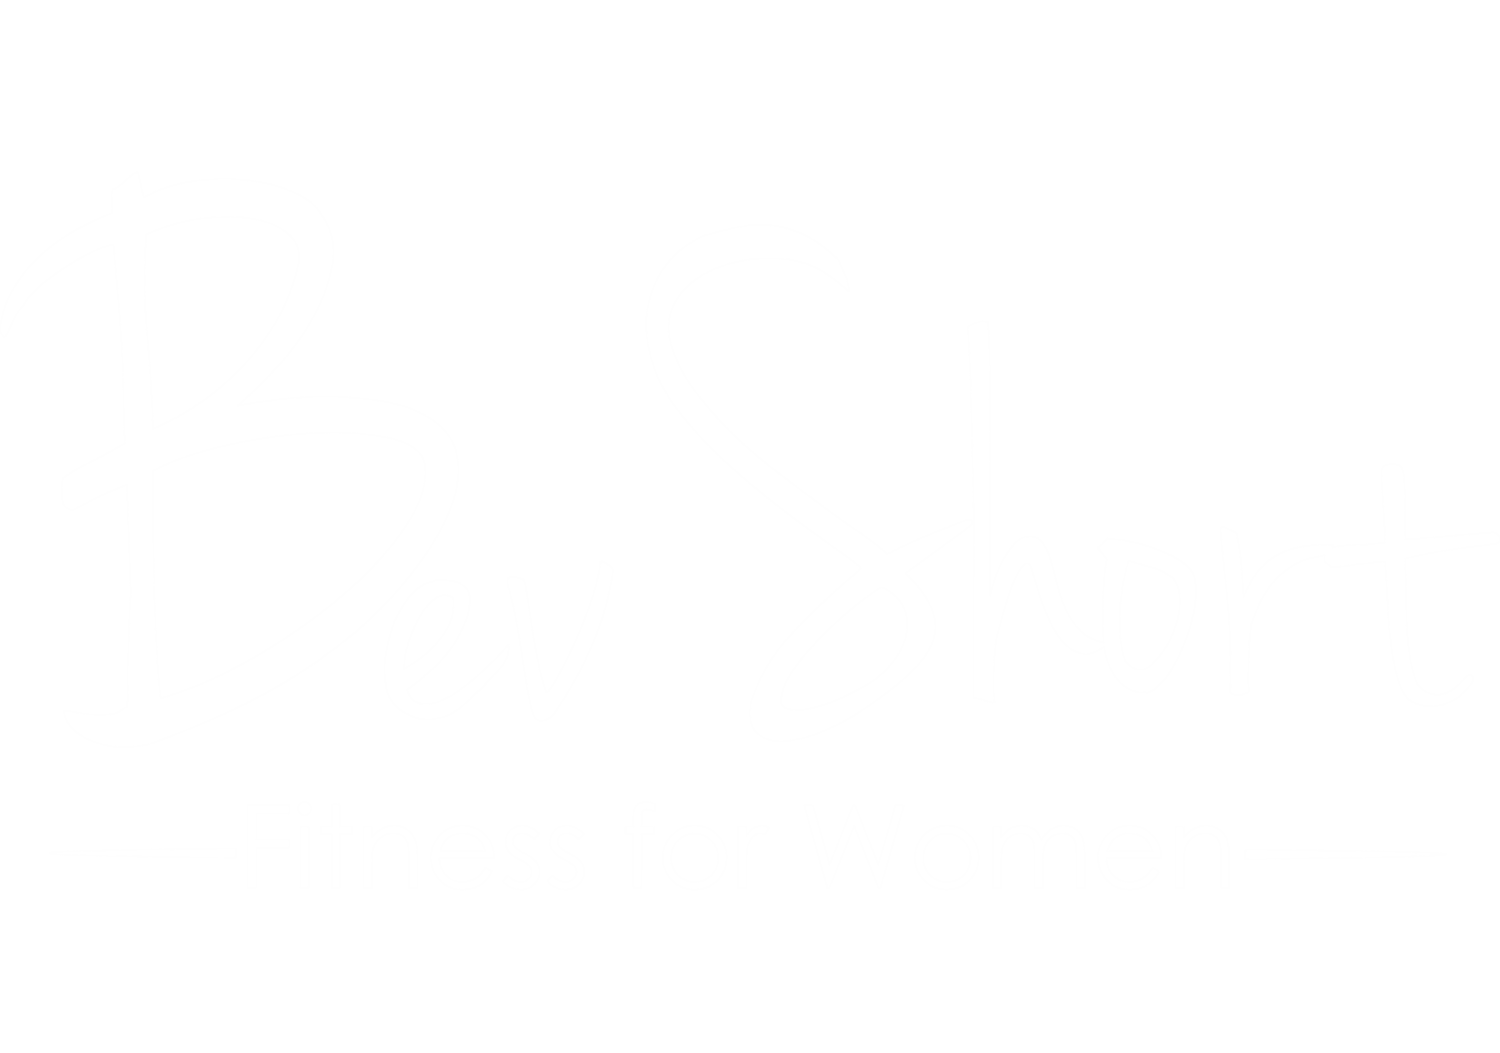 BEV SHORT'S Fitness for Women in Wellington